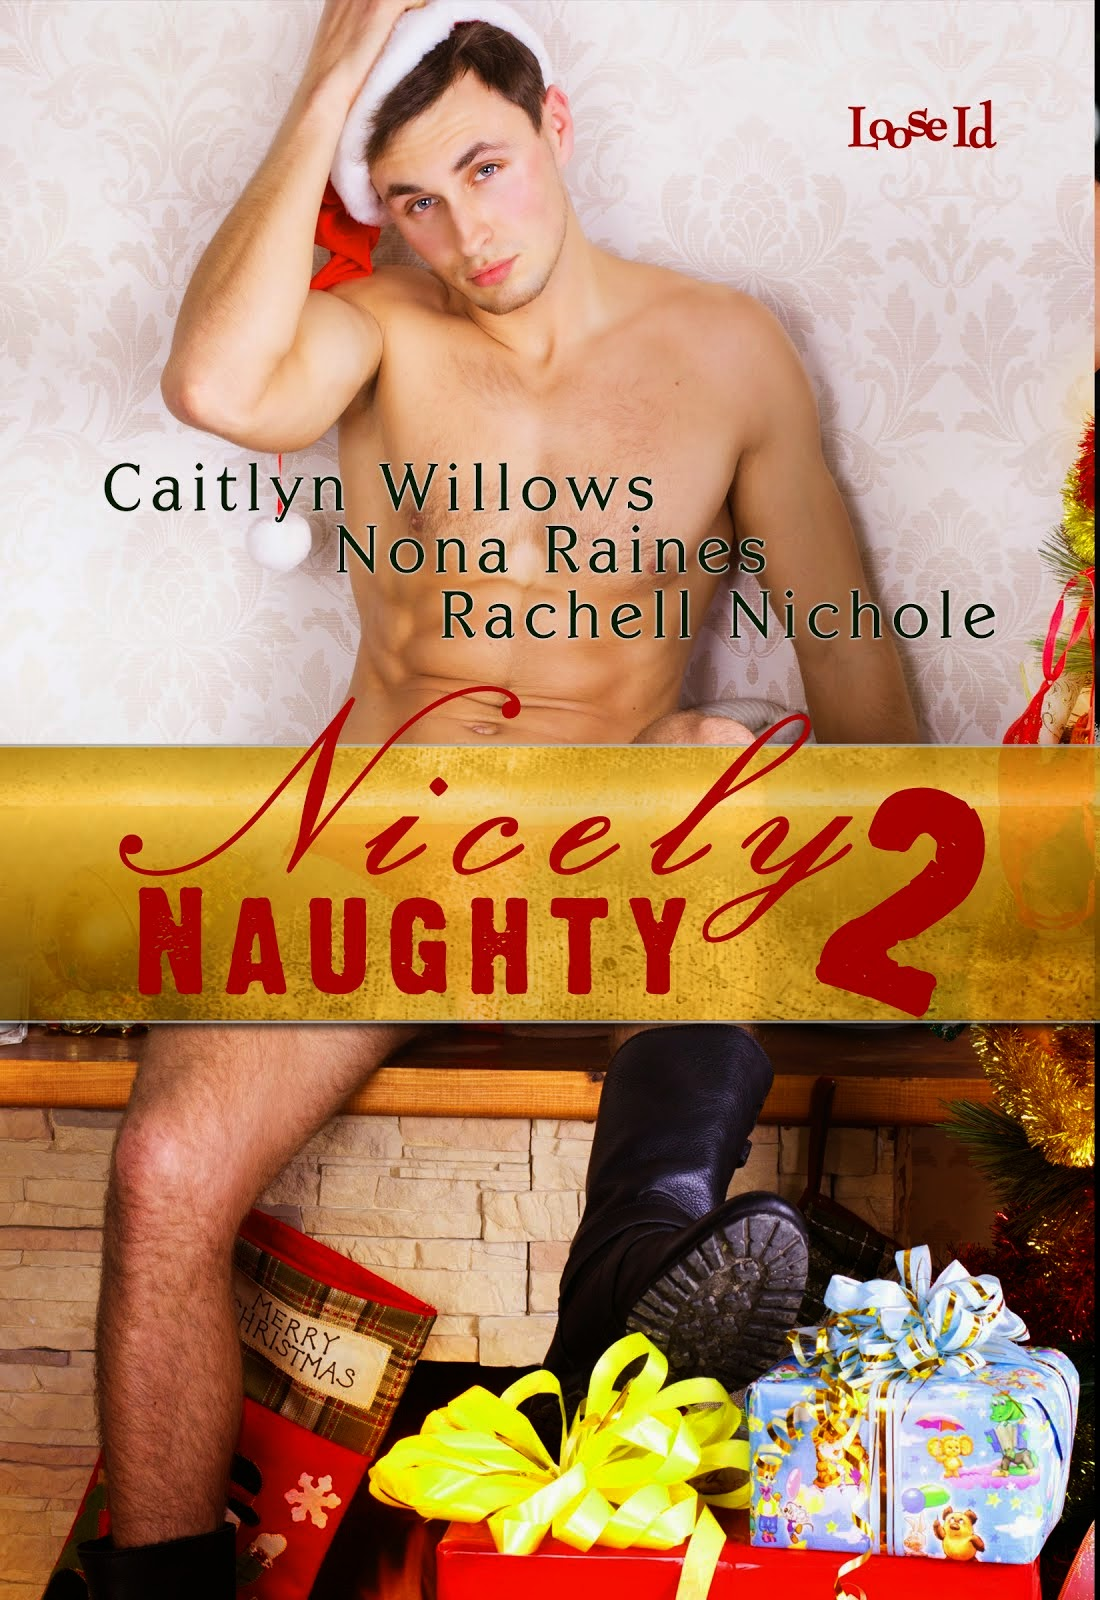 ON SALE NOW from Nona Raines and Rachell Nichole